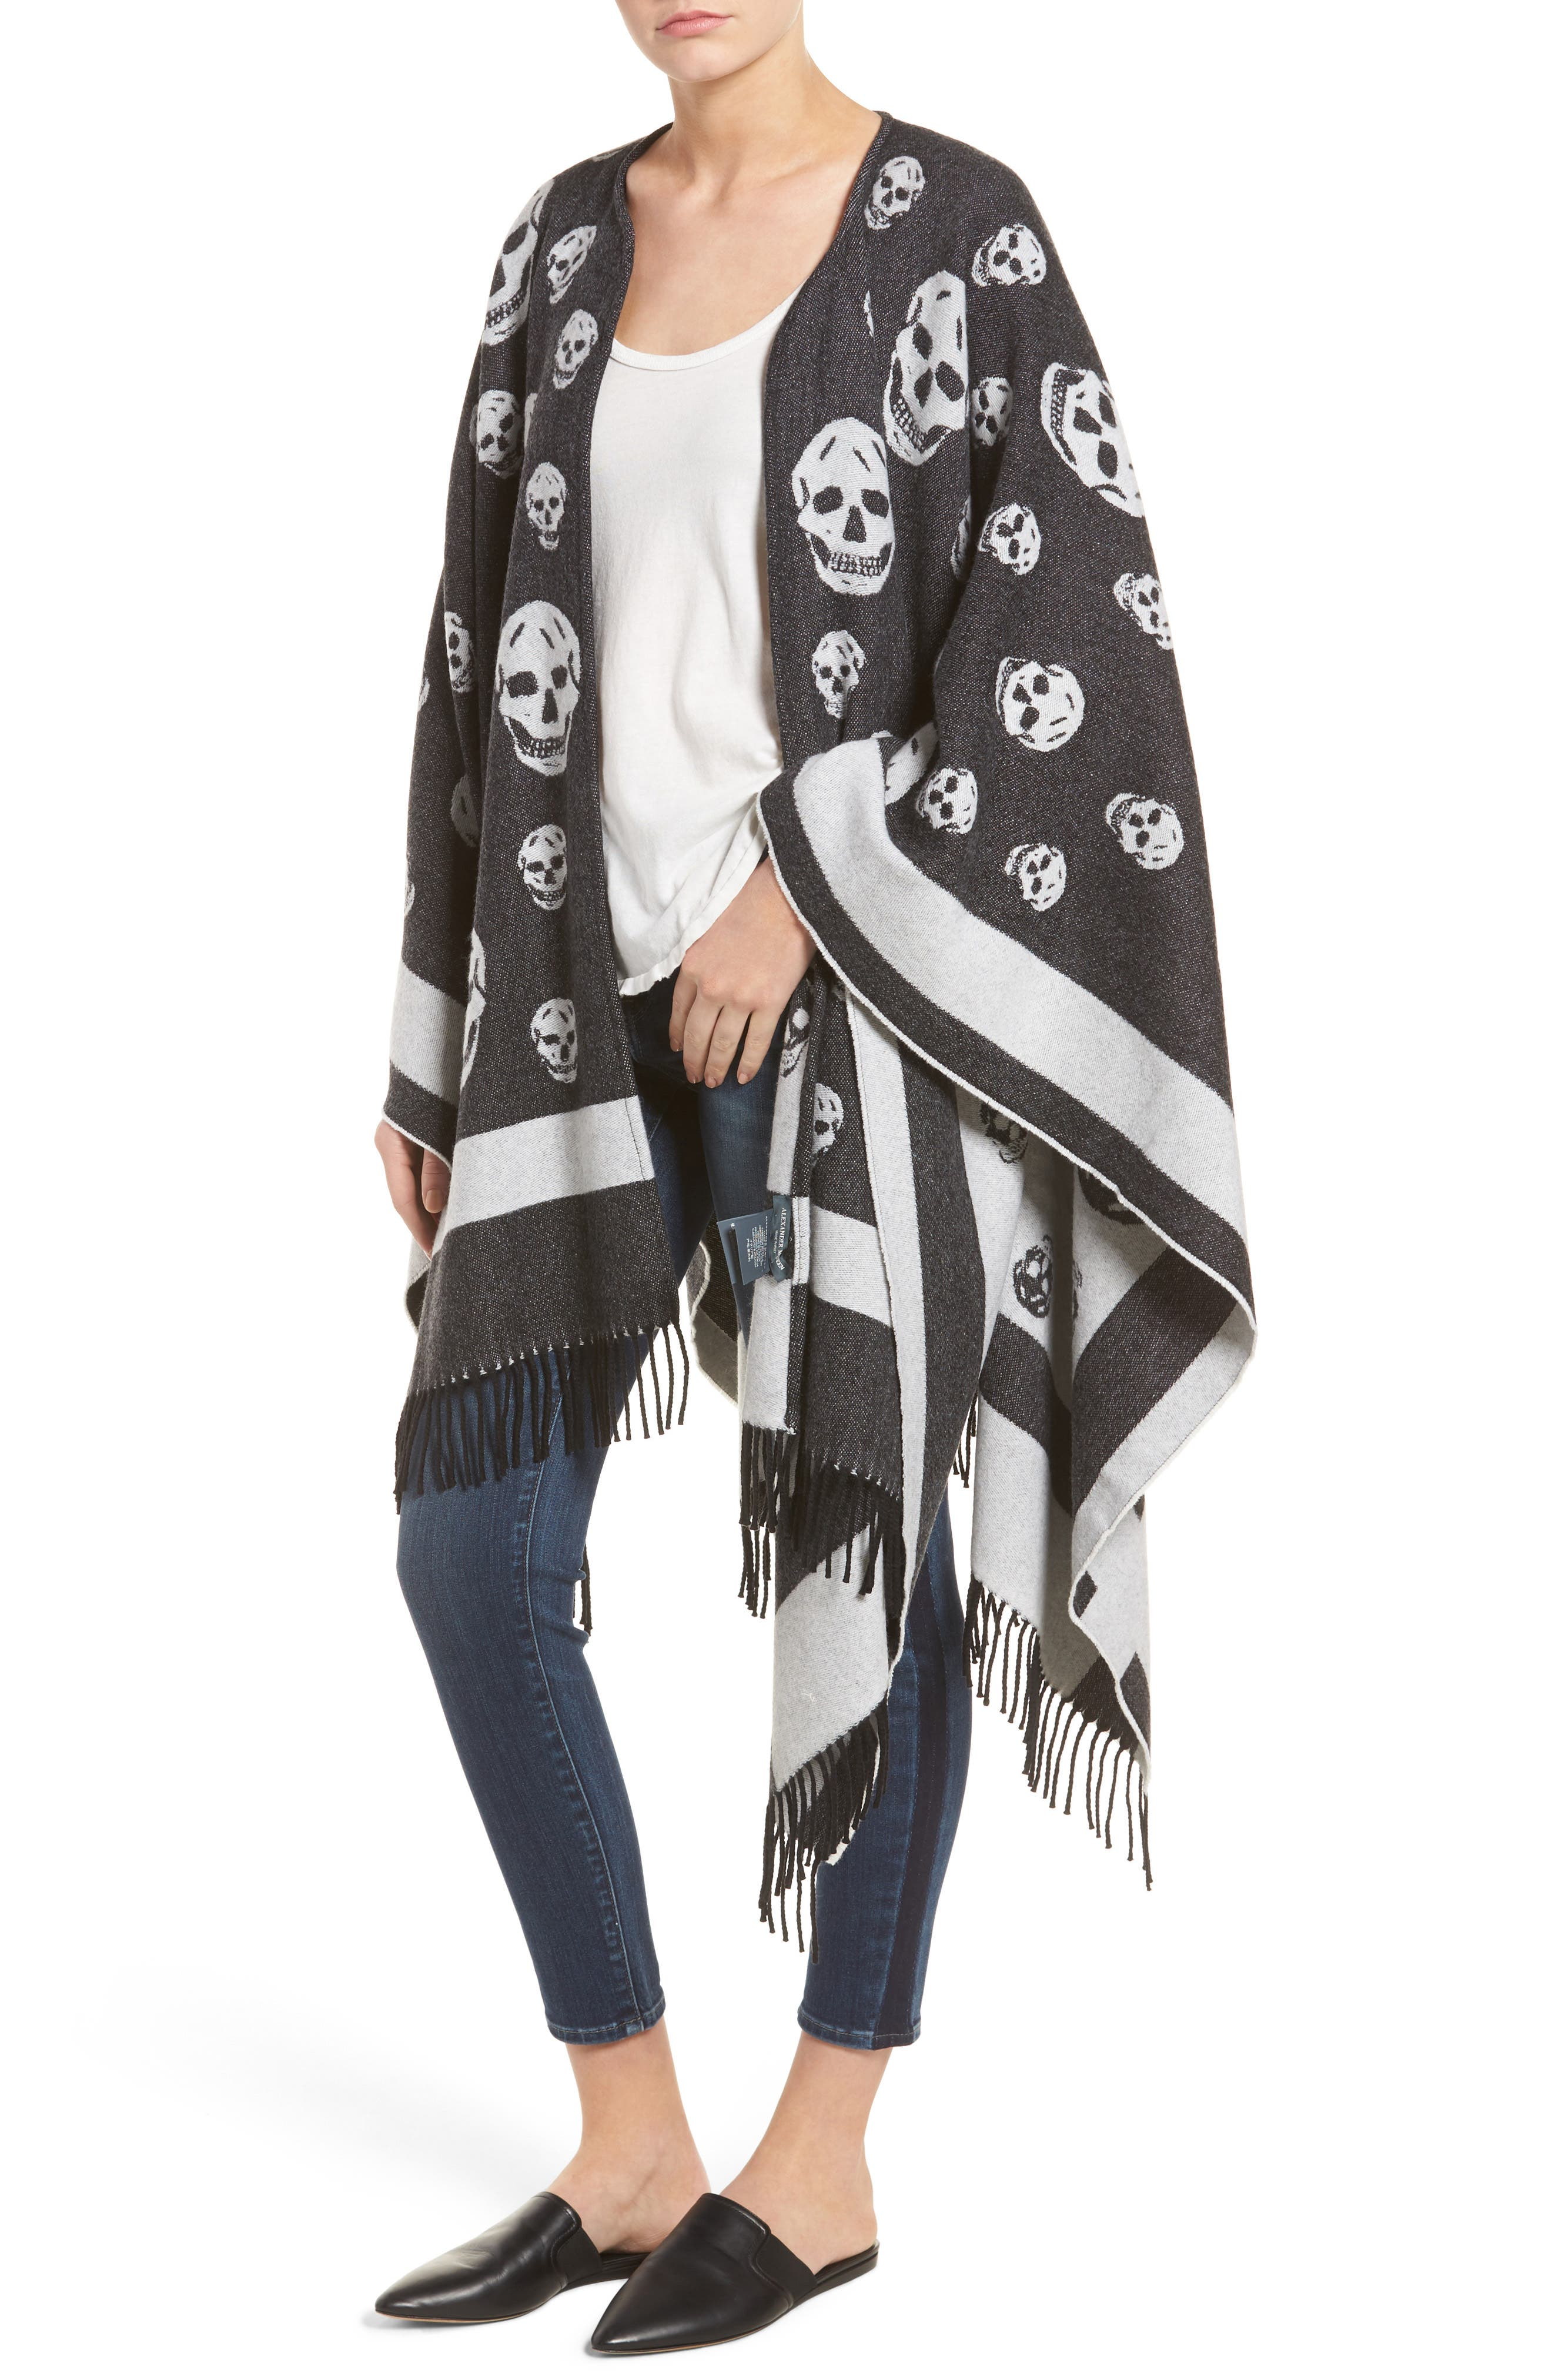 Alternate Image 1 Selected - Alexander McQueen 'Big Skull' Wool & Cashmere Jacquard Poncho